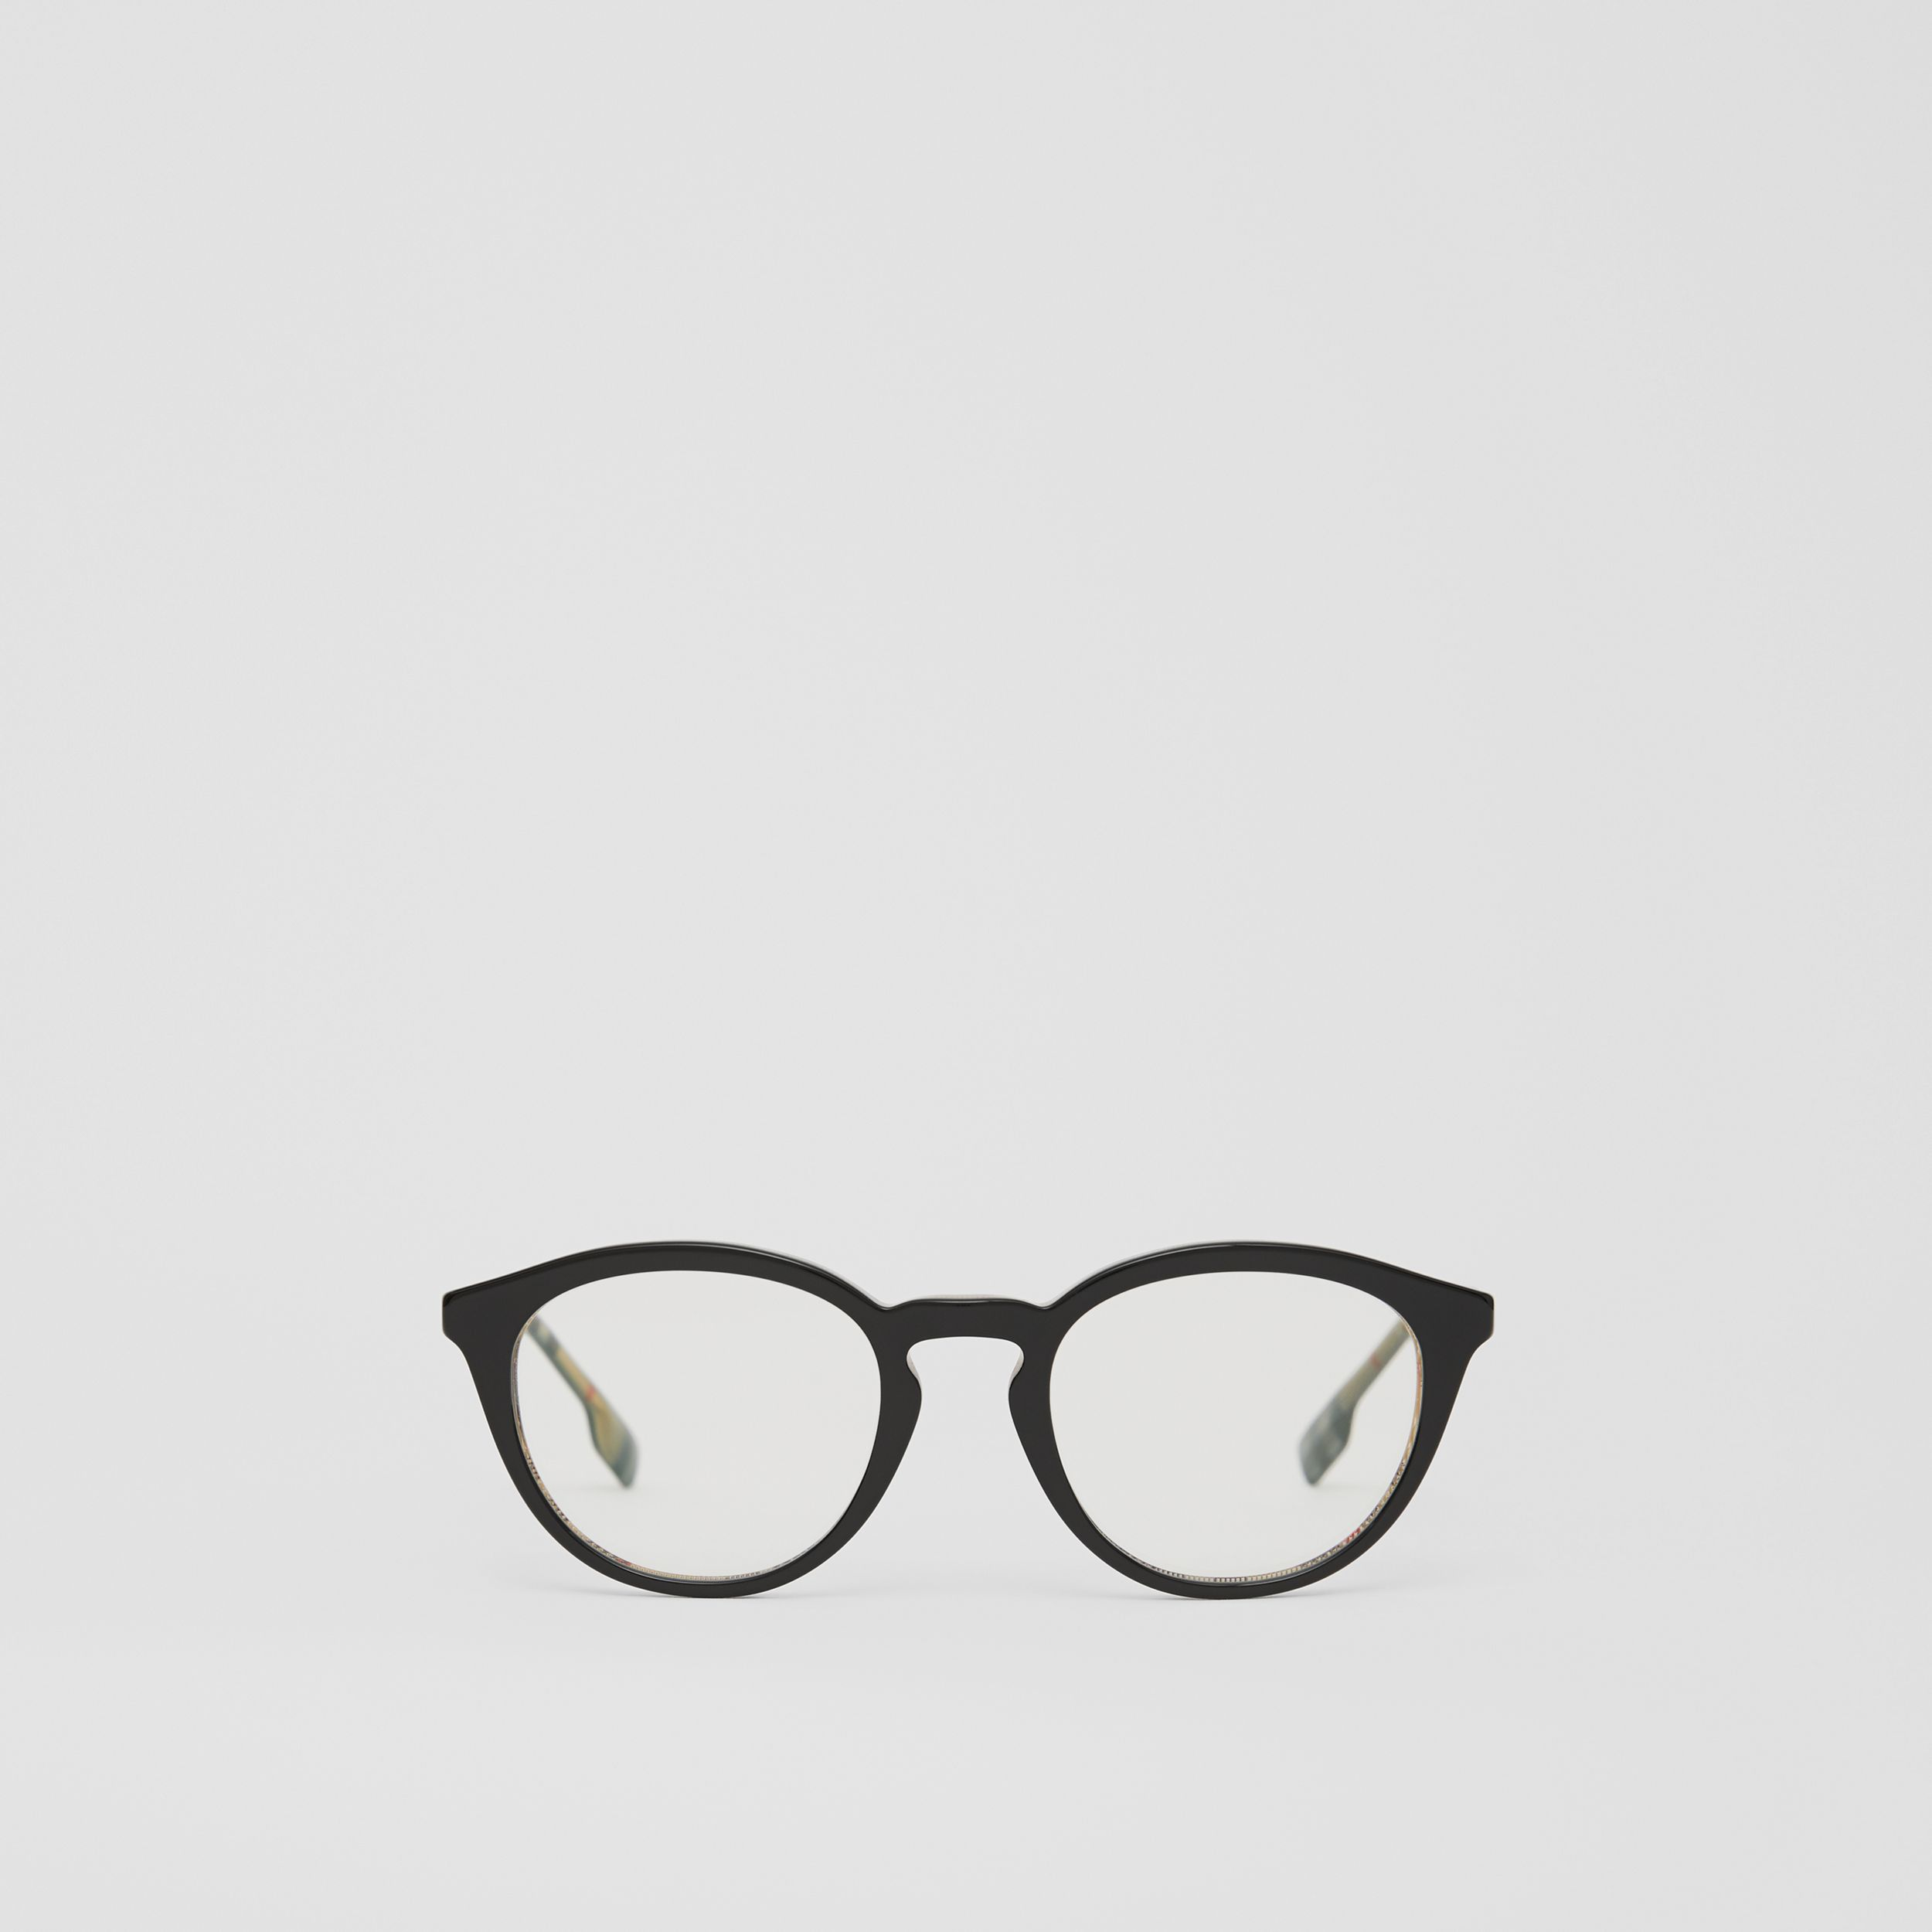 Round Optical Frames in Black/beige - Men | Burberry - 1